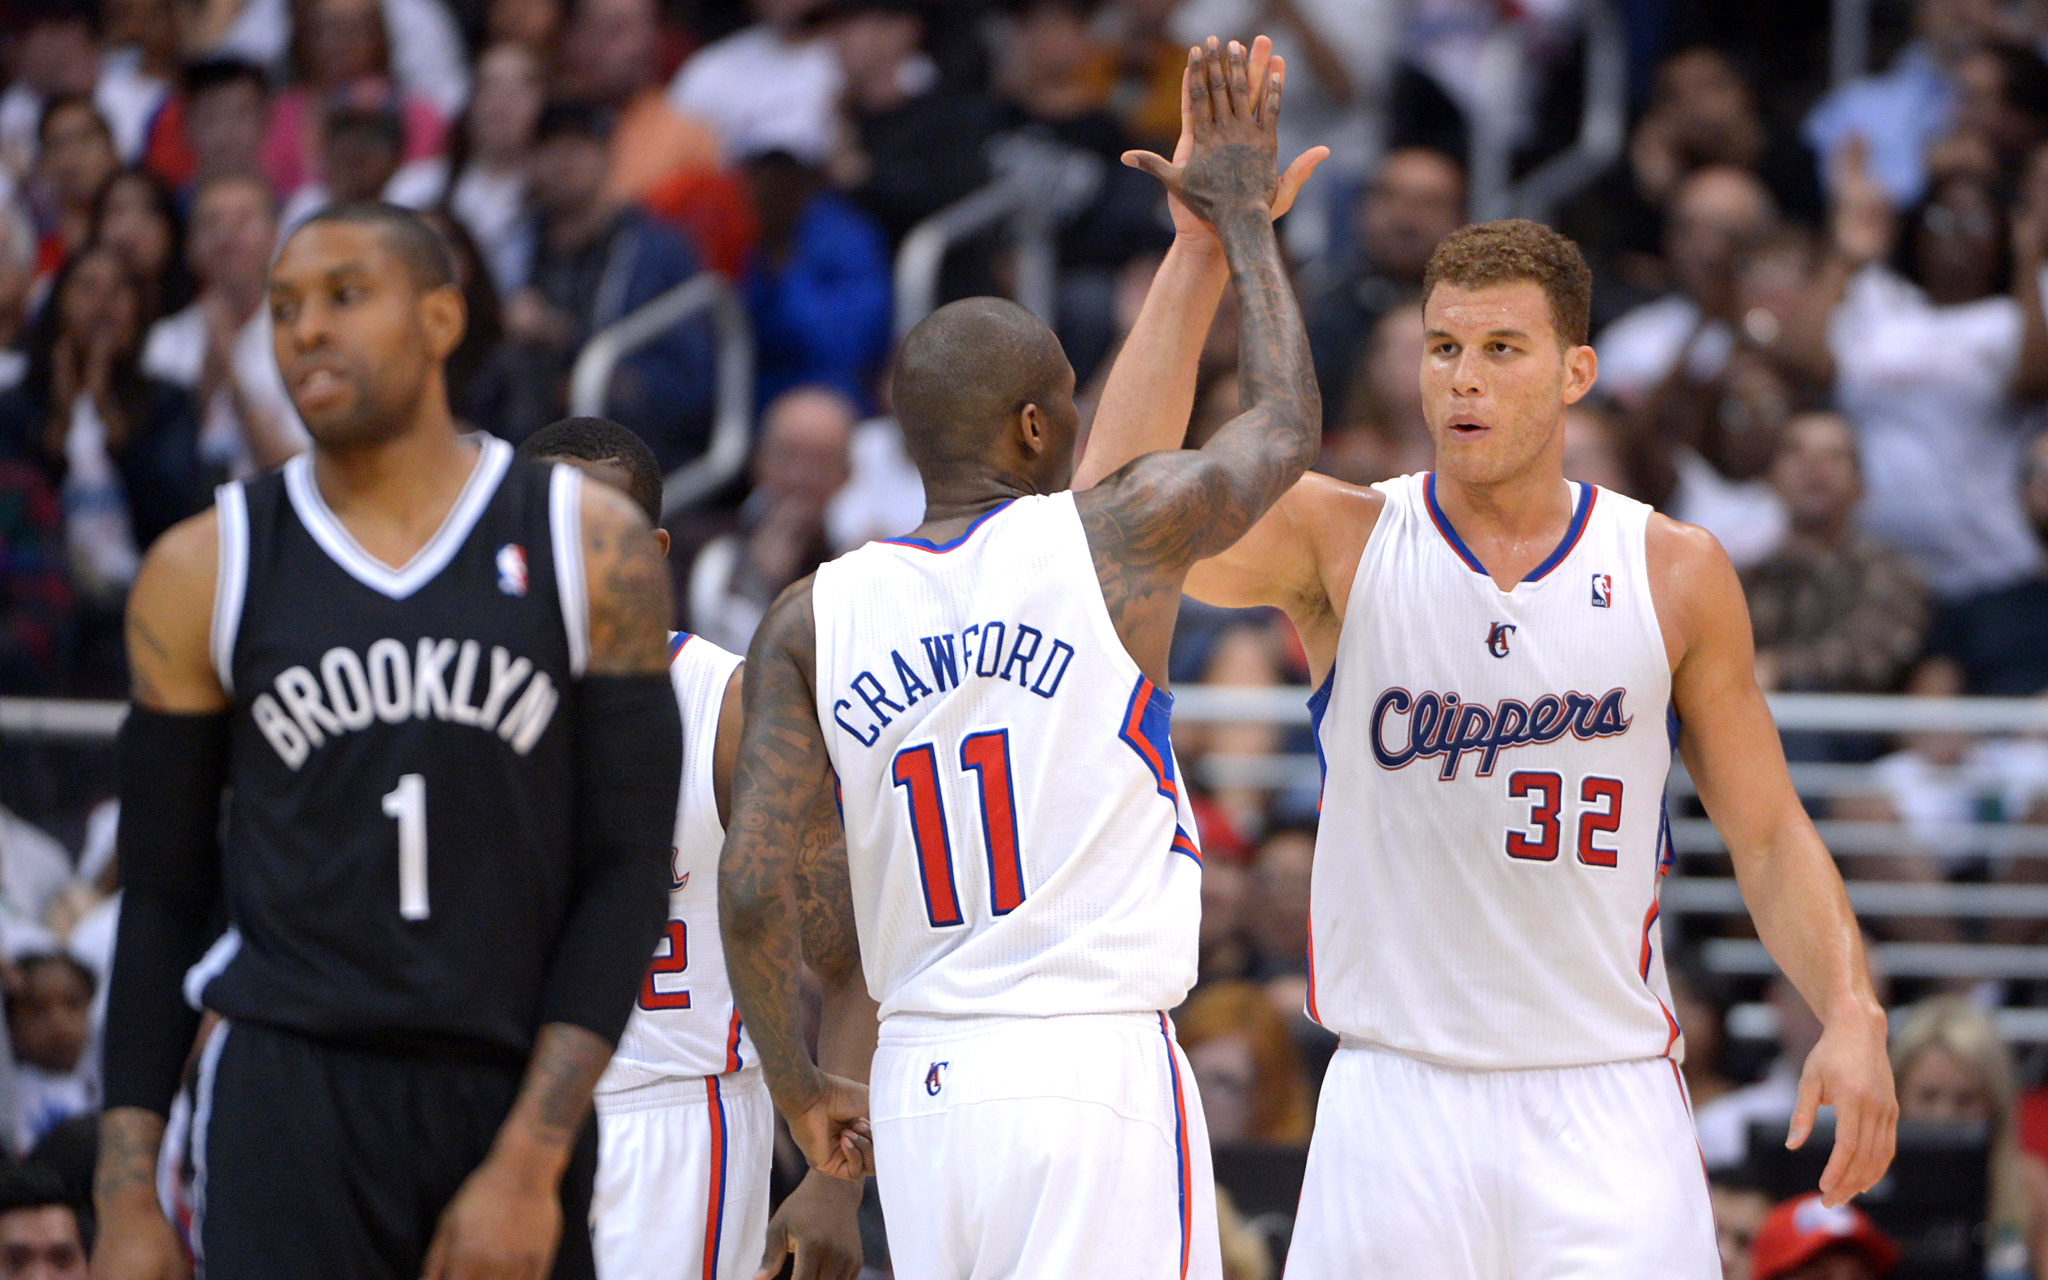 Blake Griffin and Jamal Crawford